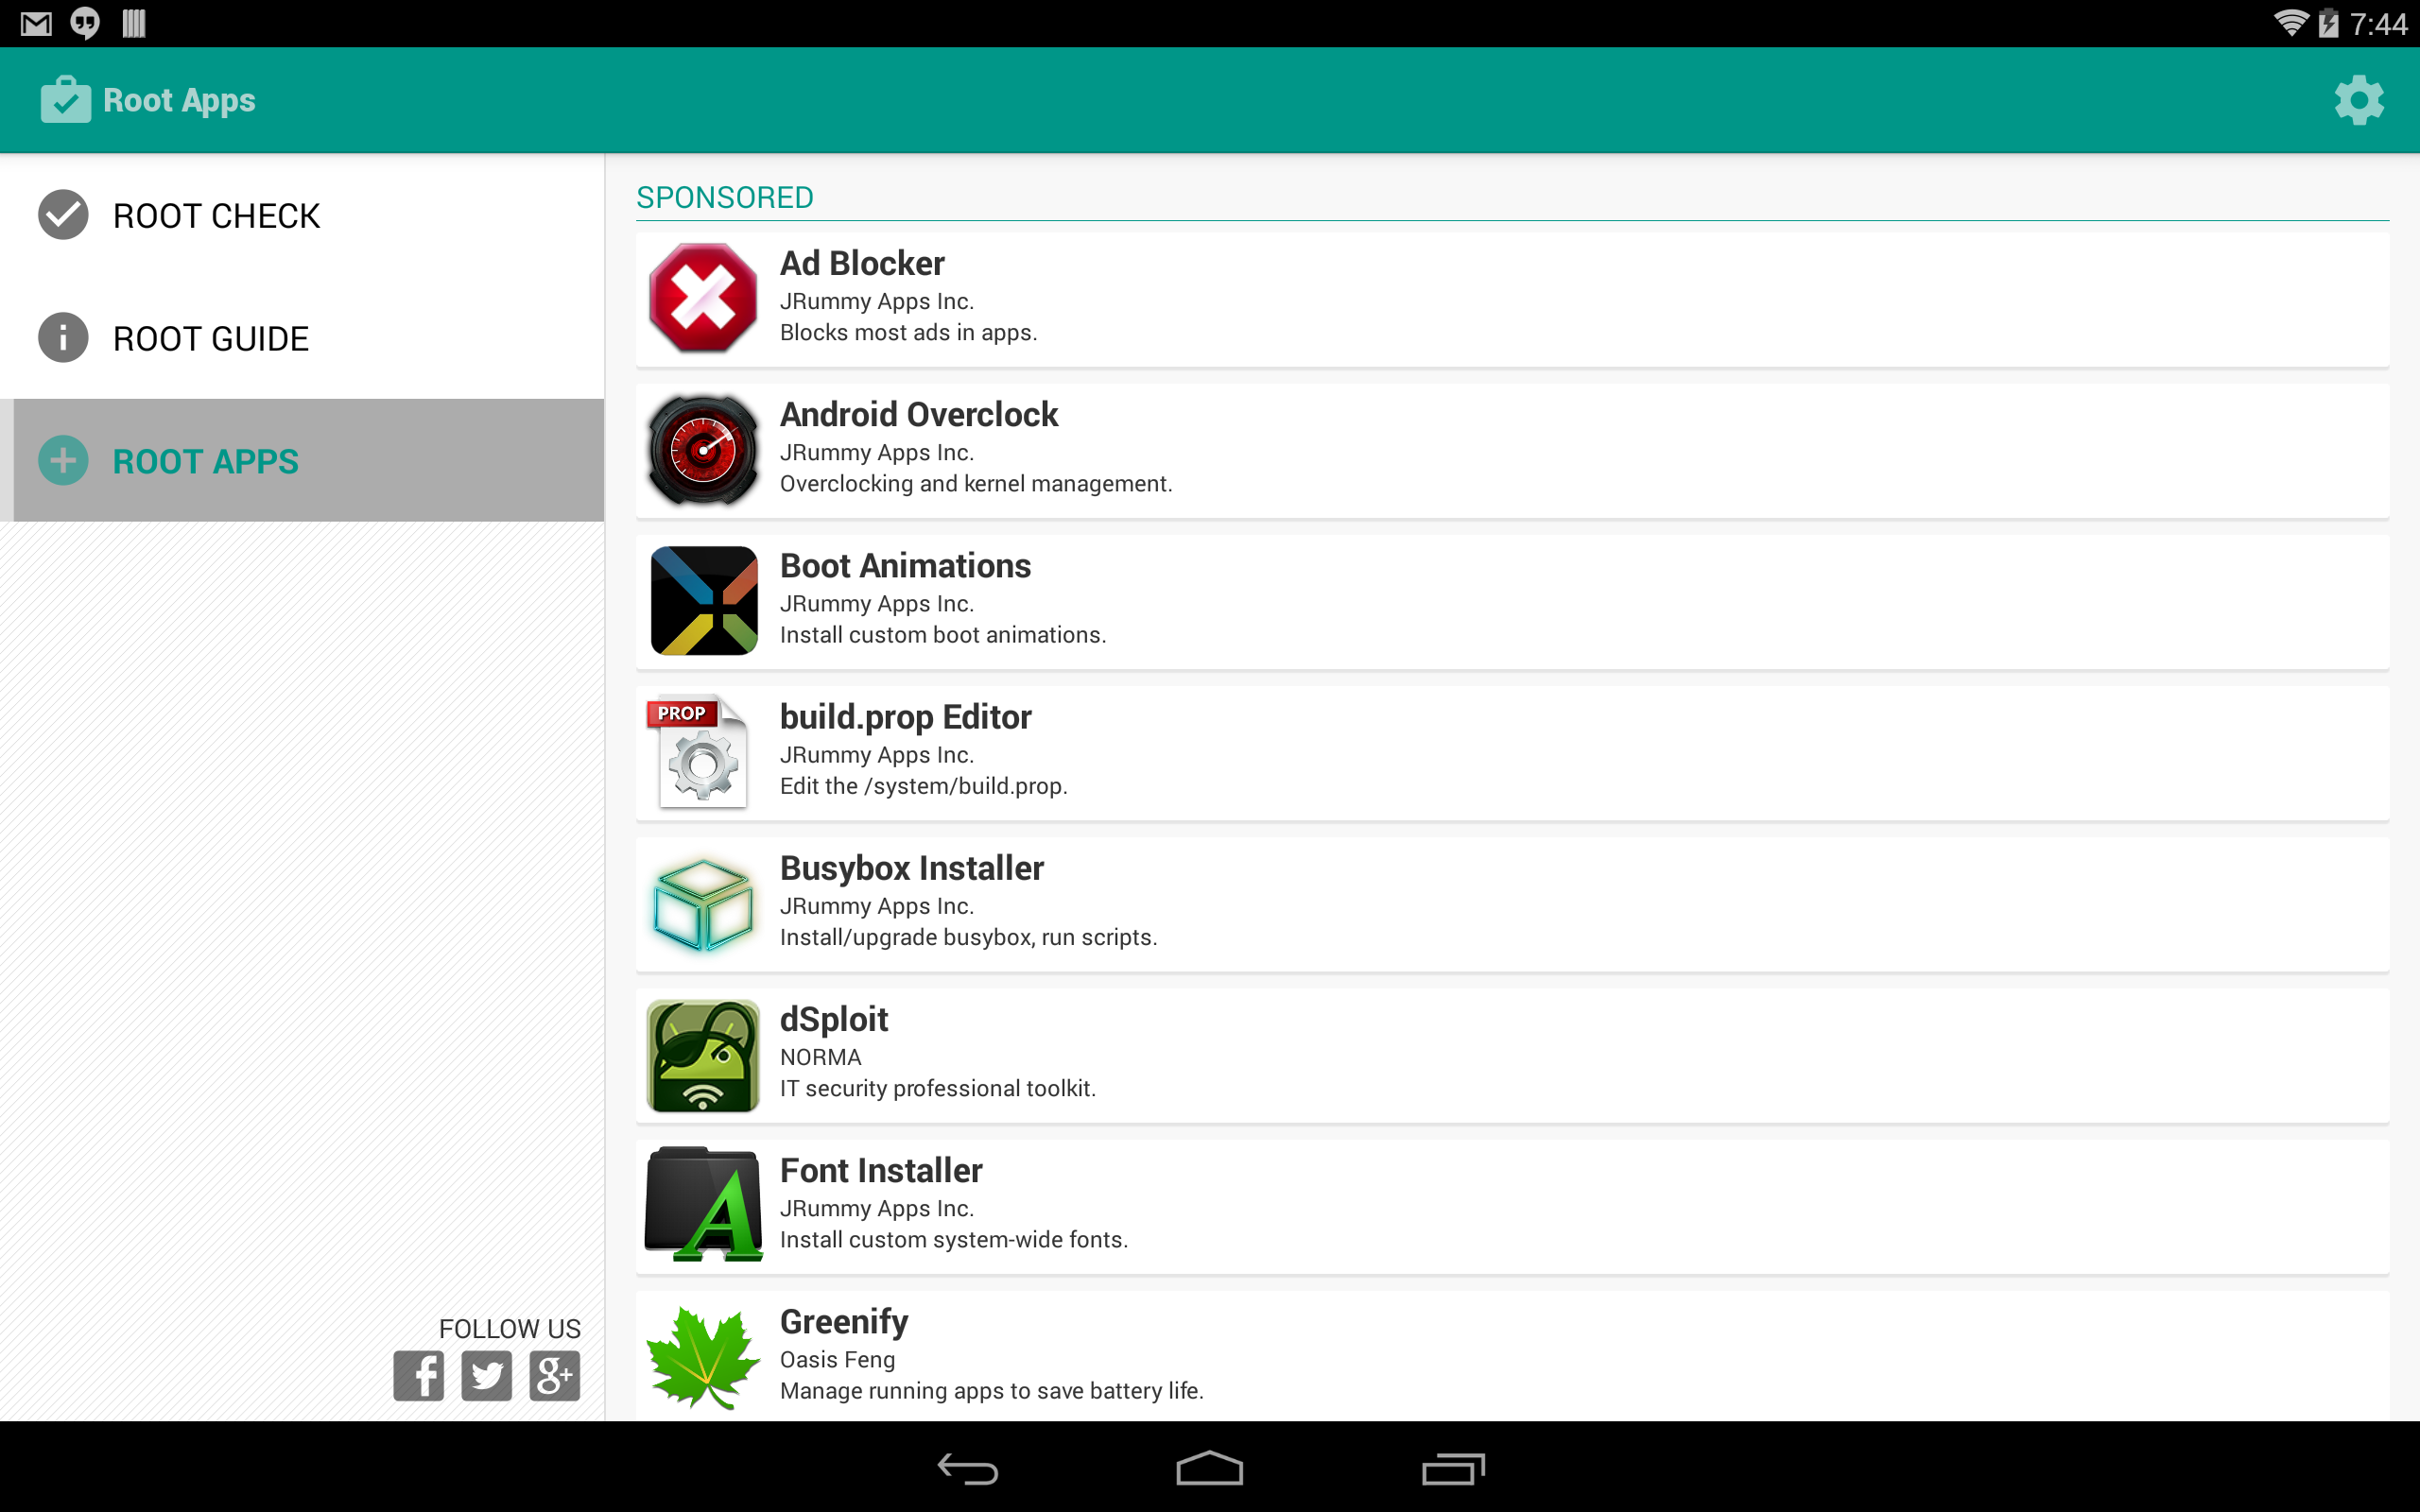 Tablet Root Apps